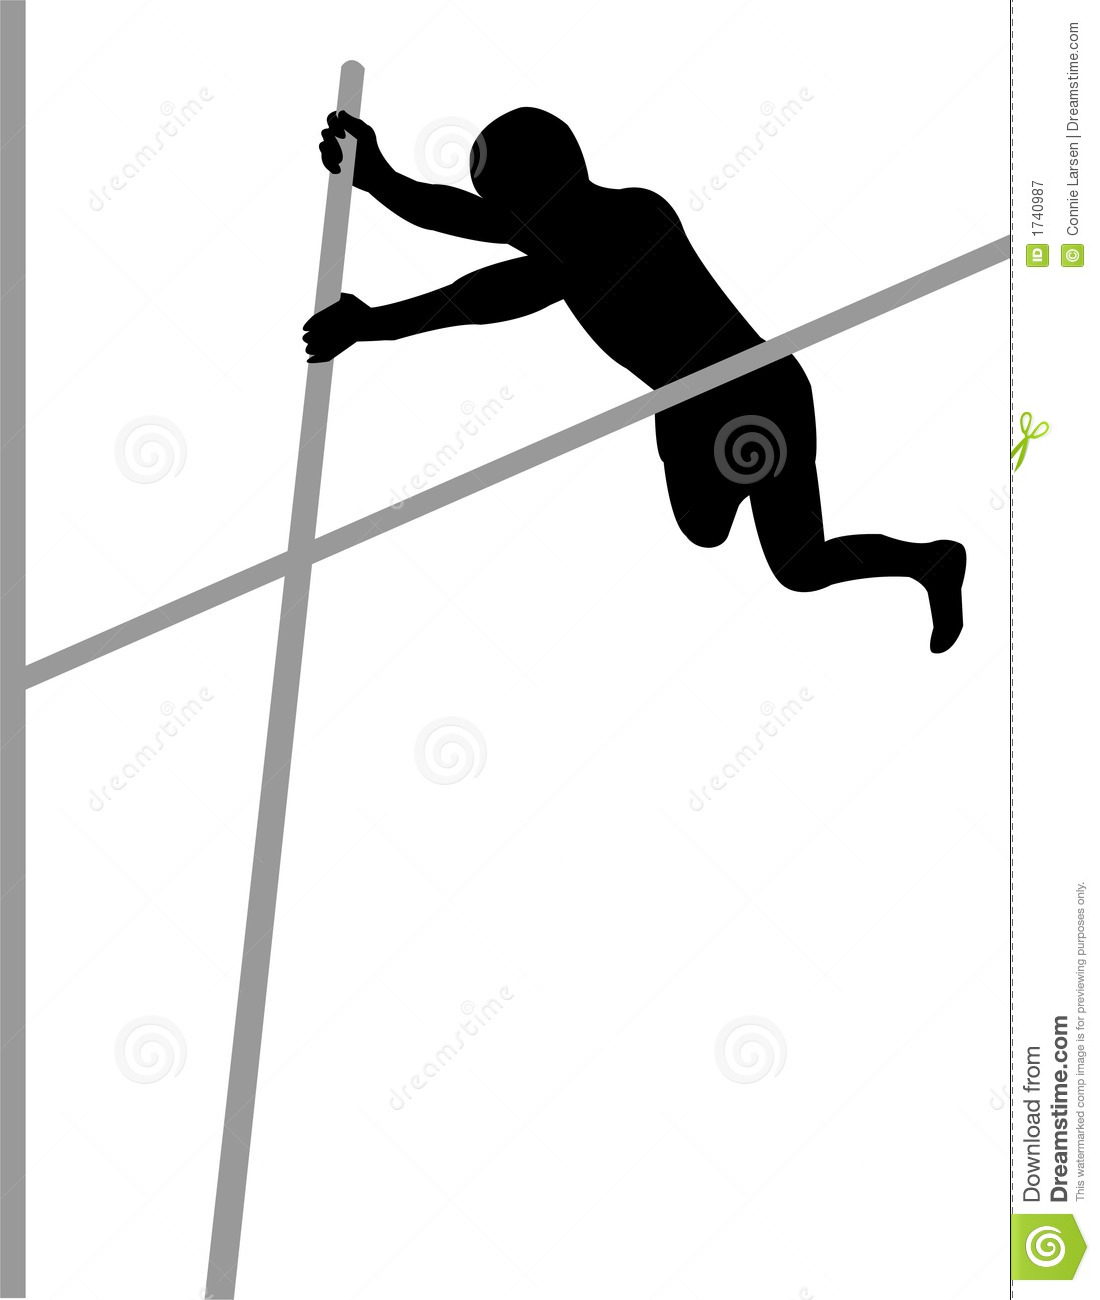 Illustration of a track and field athletes competing in pole vault.